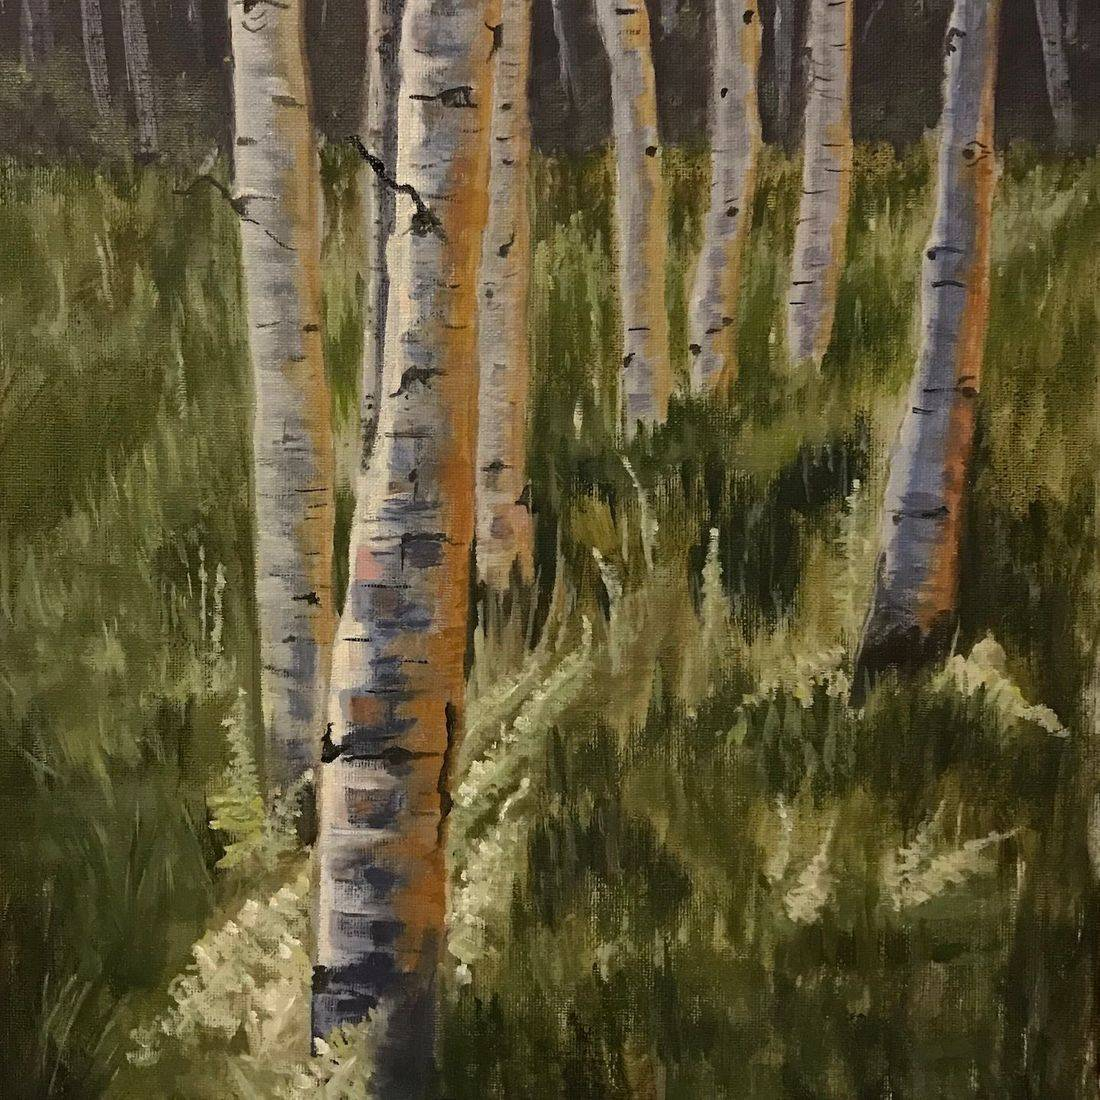 Aspen, Colorado, Kebler Pass, Western Art, Leaf Peeping